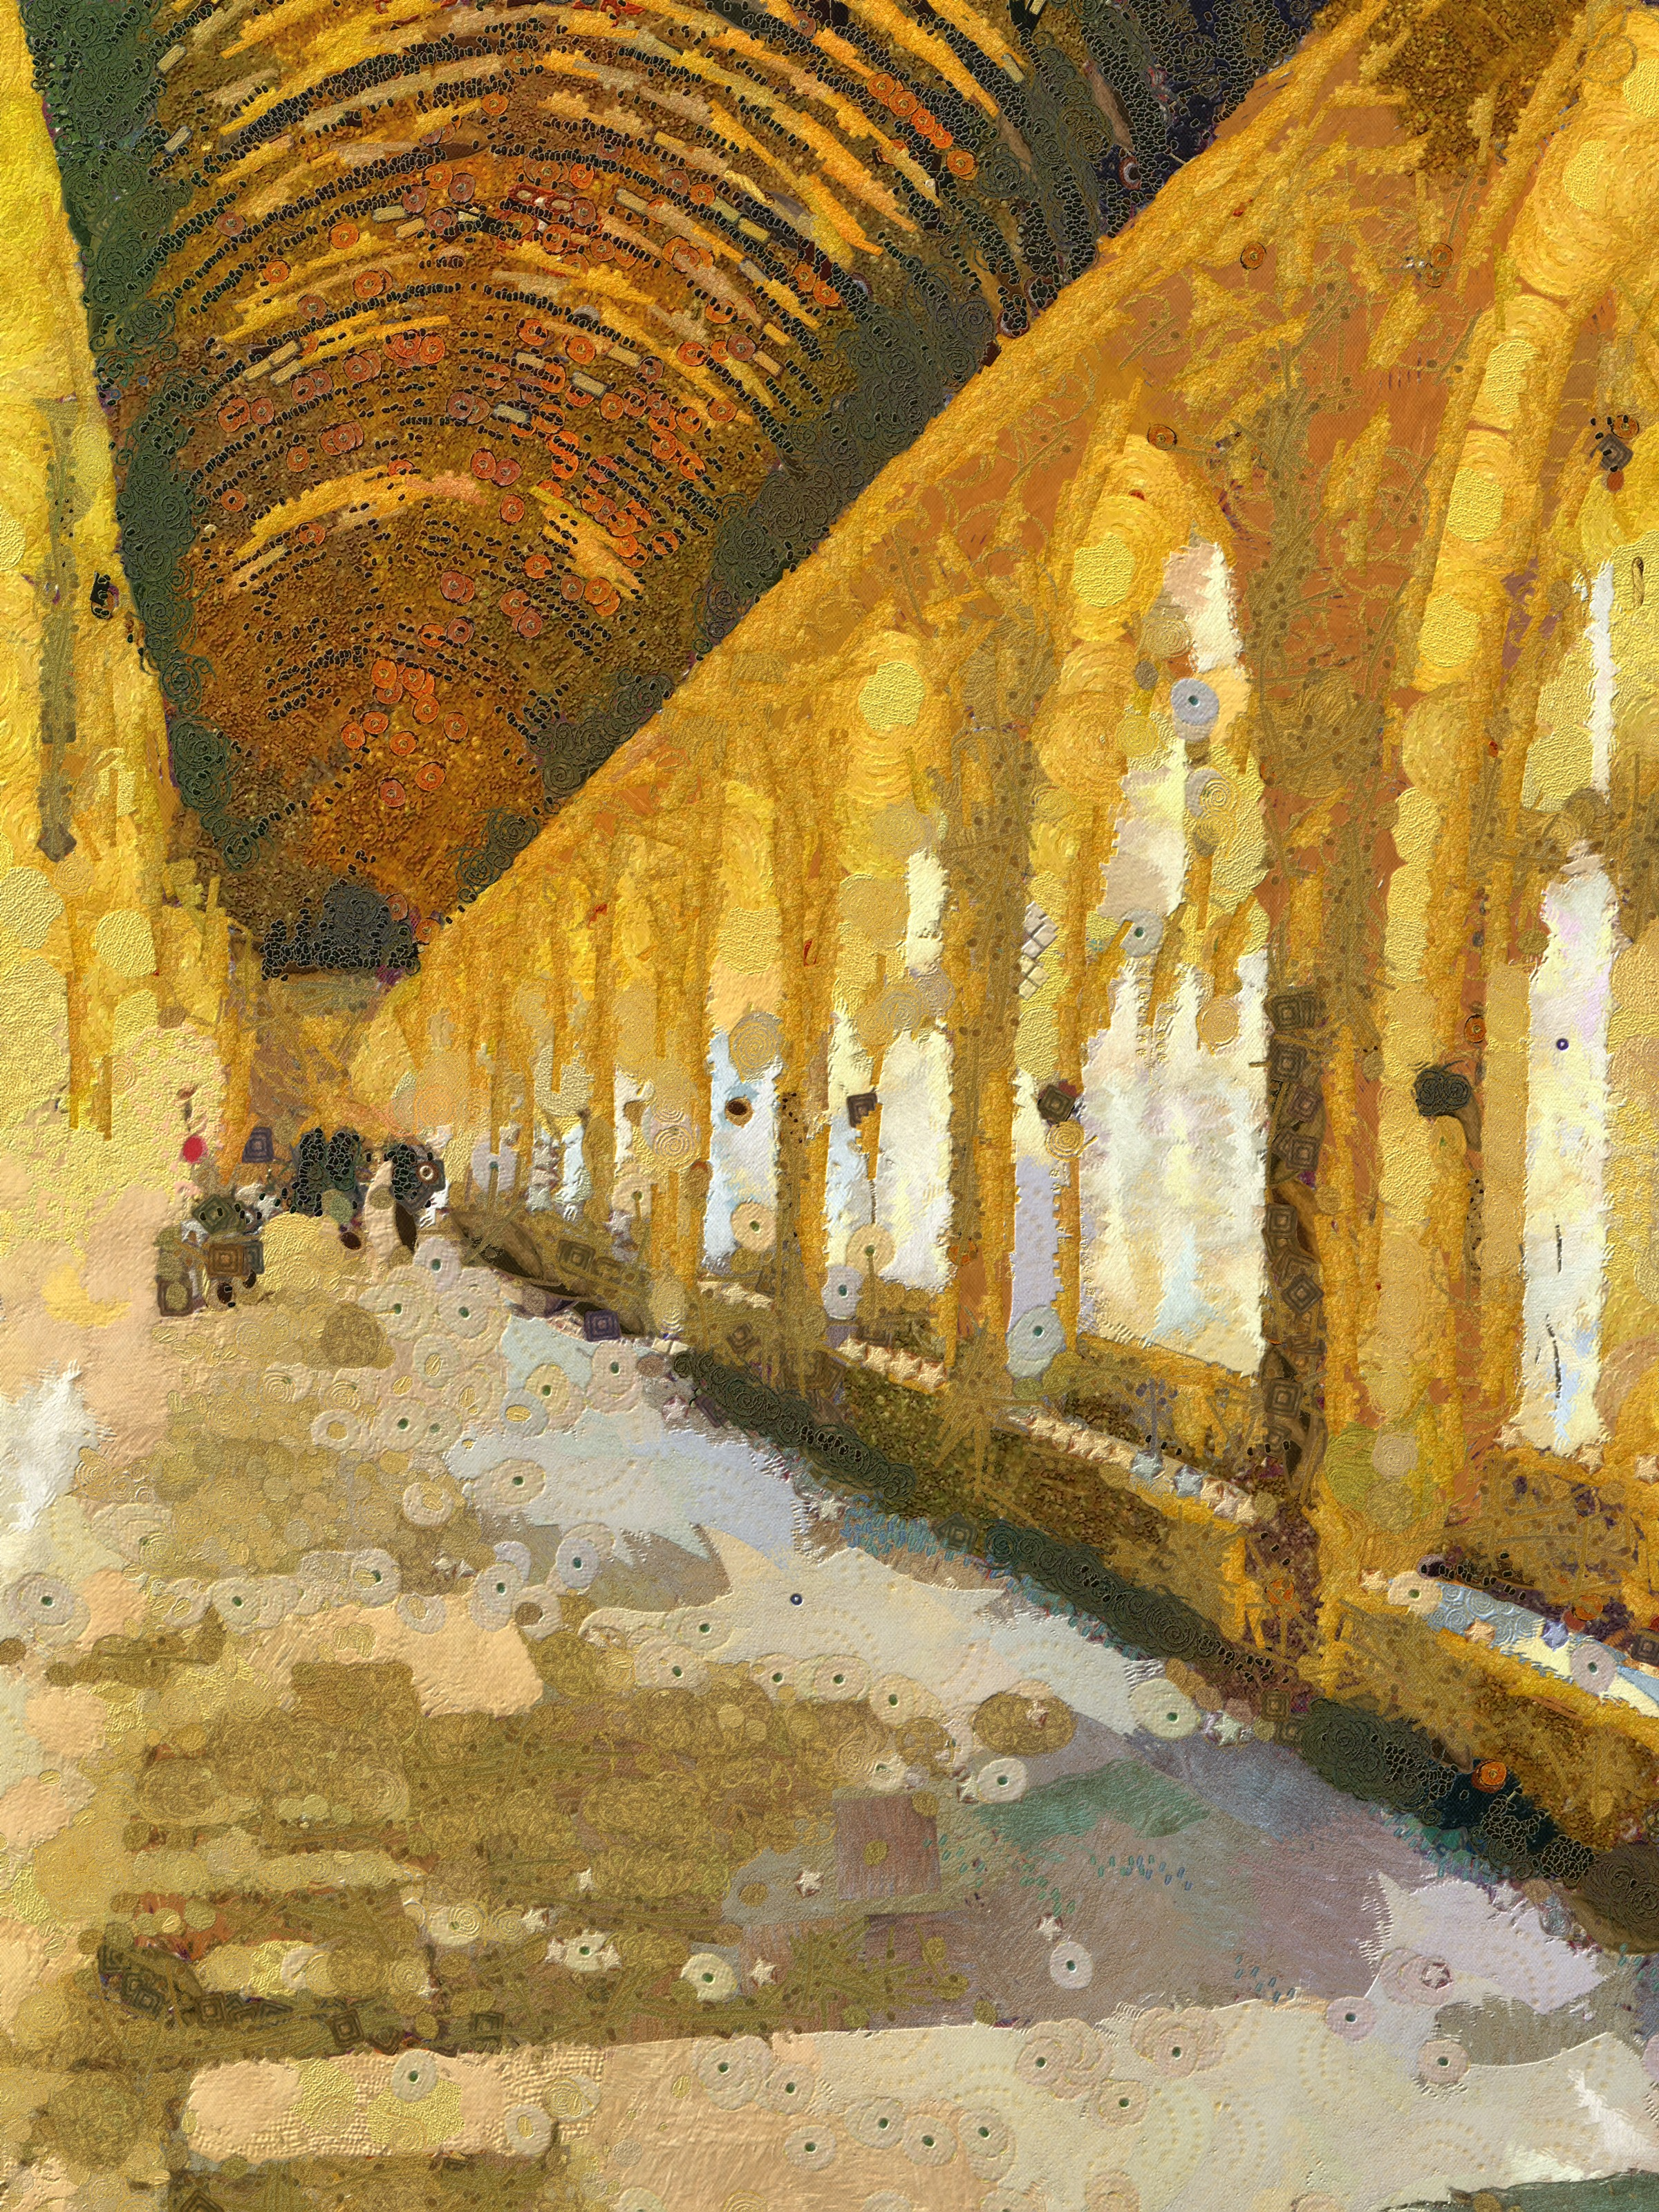 Golden Cloisters